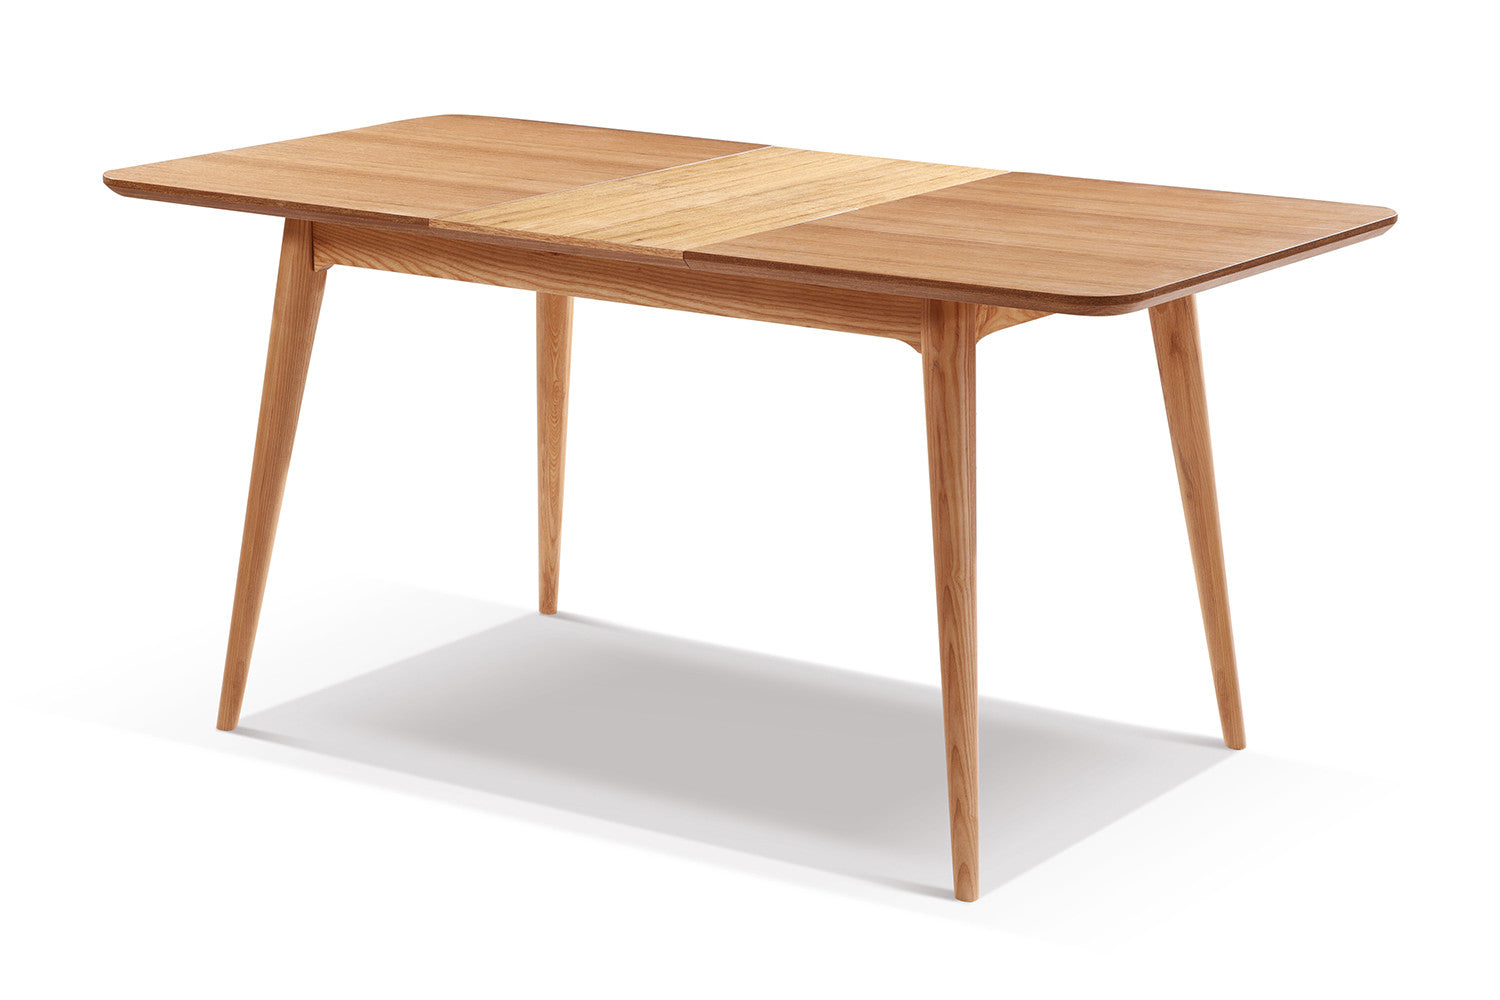 Table de salle manger extensible en bois adda dewarens for Table salle manger originale